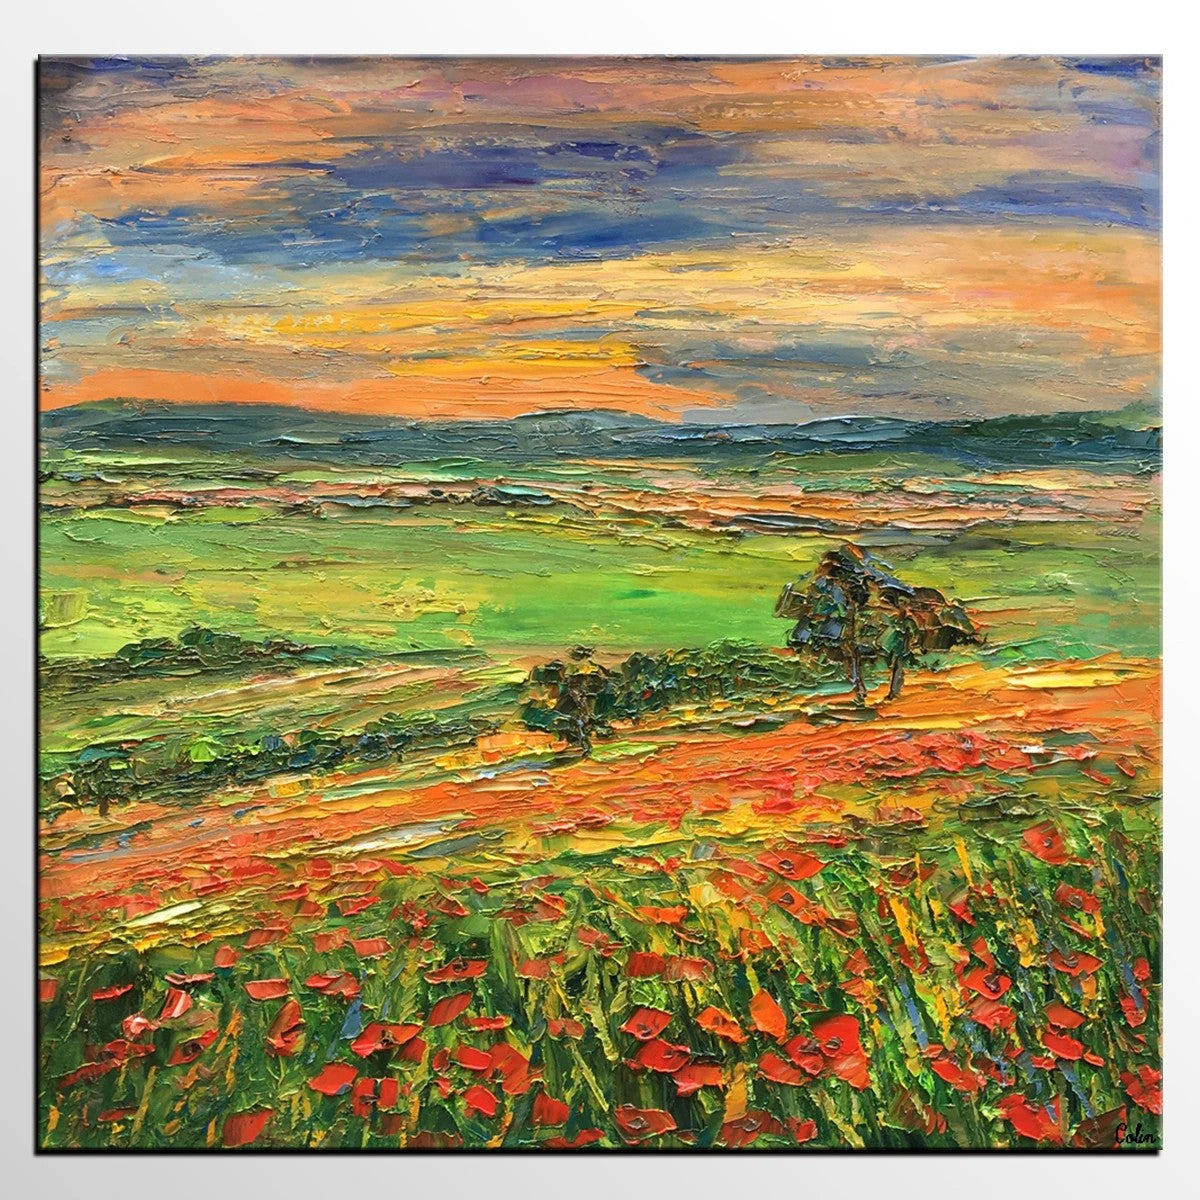 Abstract Landscape Paintings, Flower Field Painting, Heavy Texture Canvas Paintings, Original Landscape Painting, Landscape Paintings for Bedroom